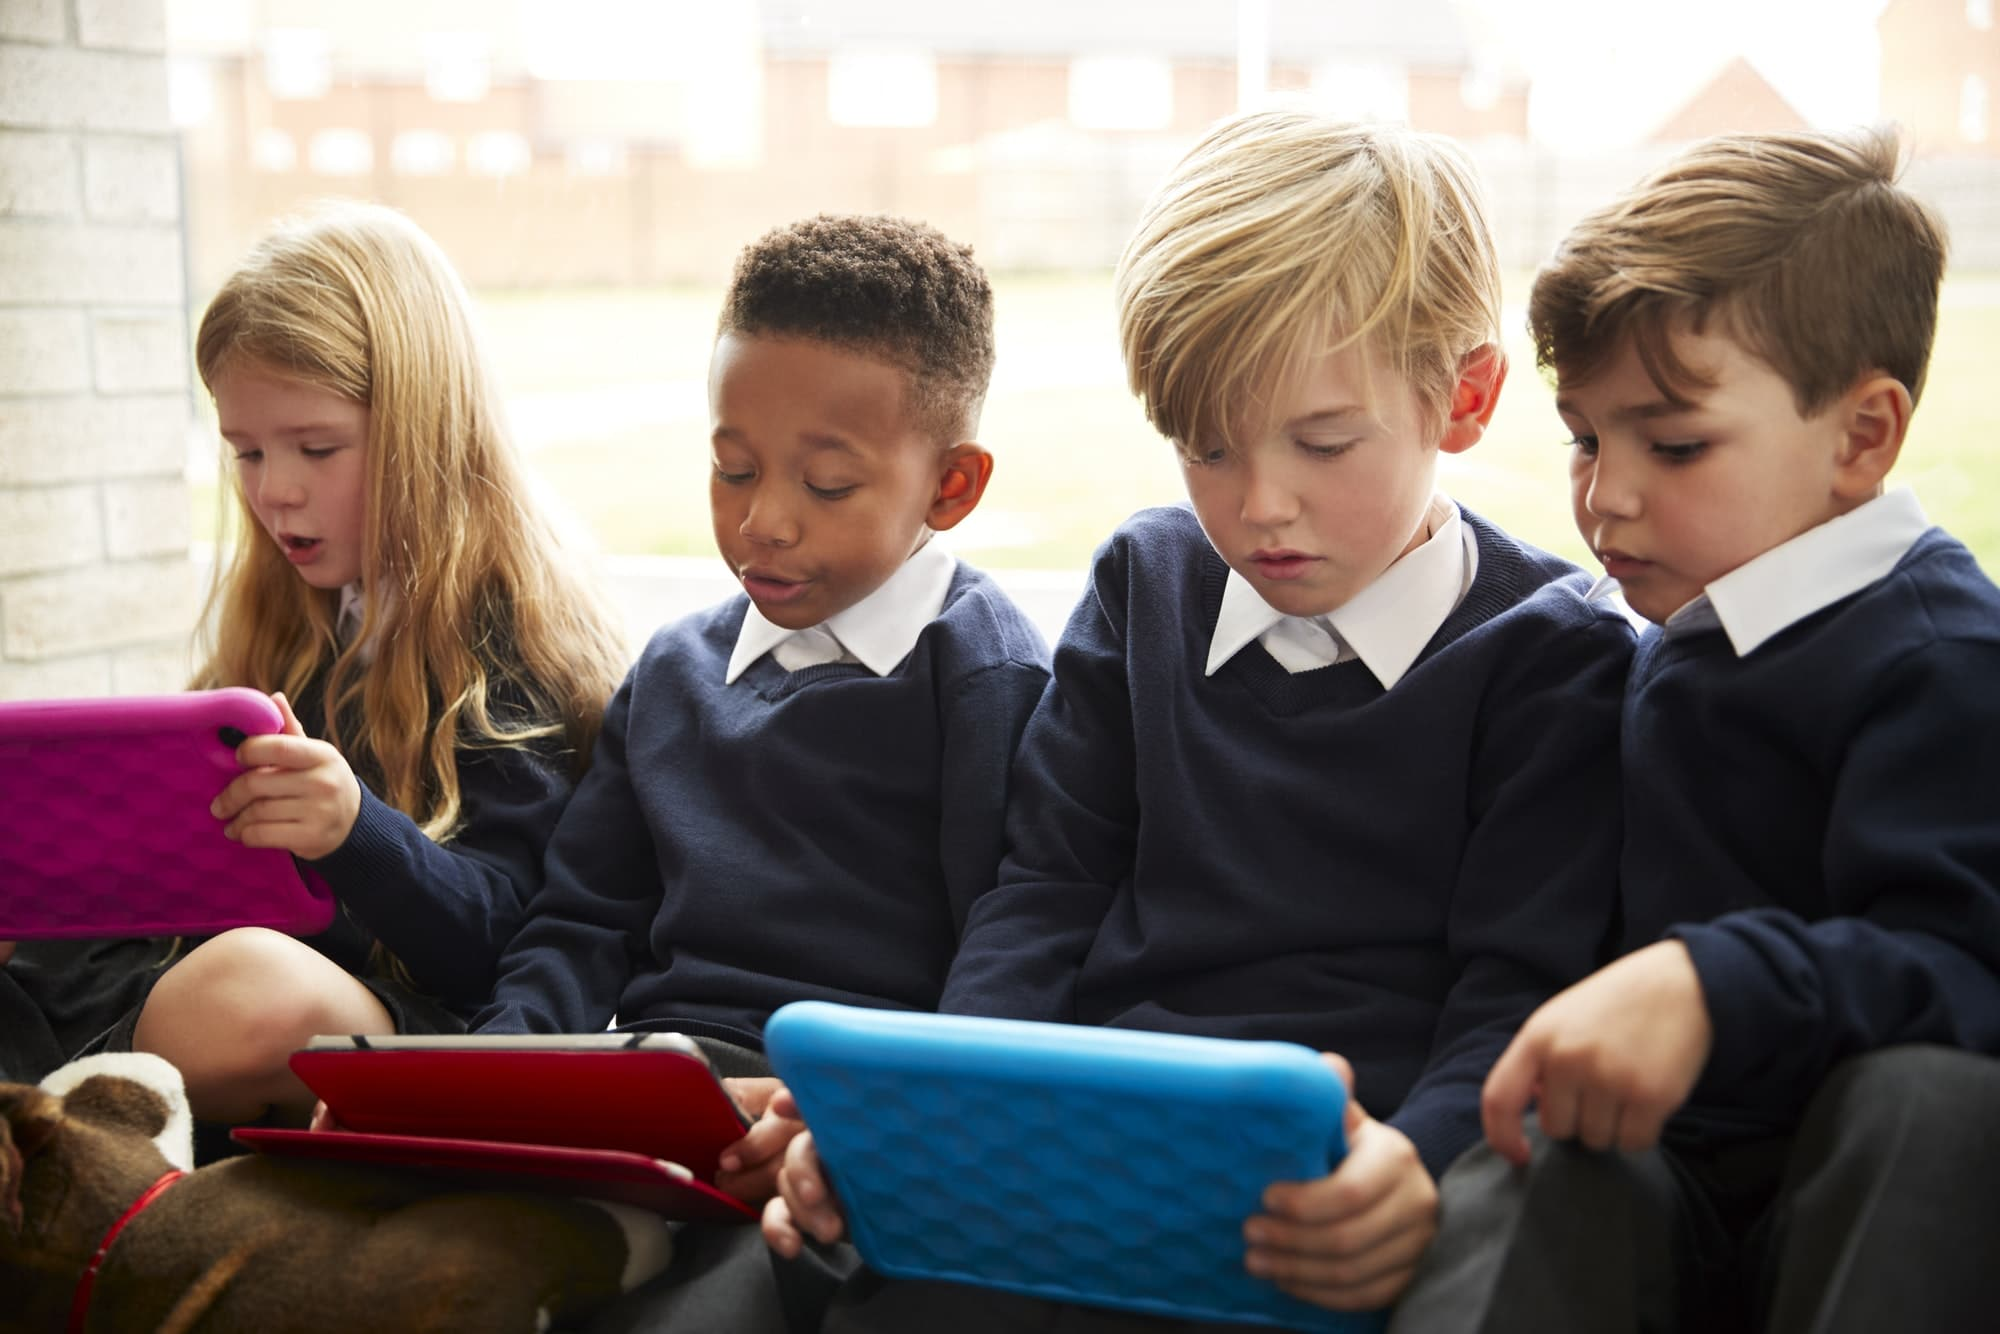 Four primary school children sitting on the floor in front of a window using tablet computers